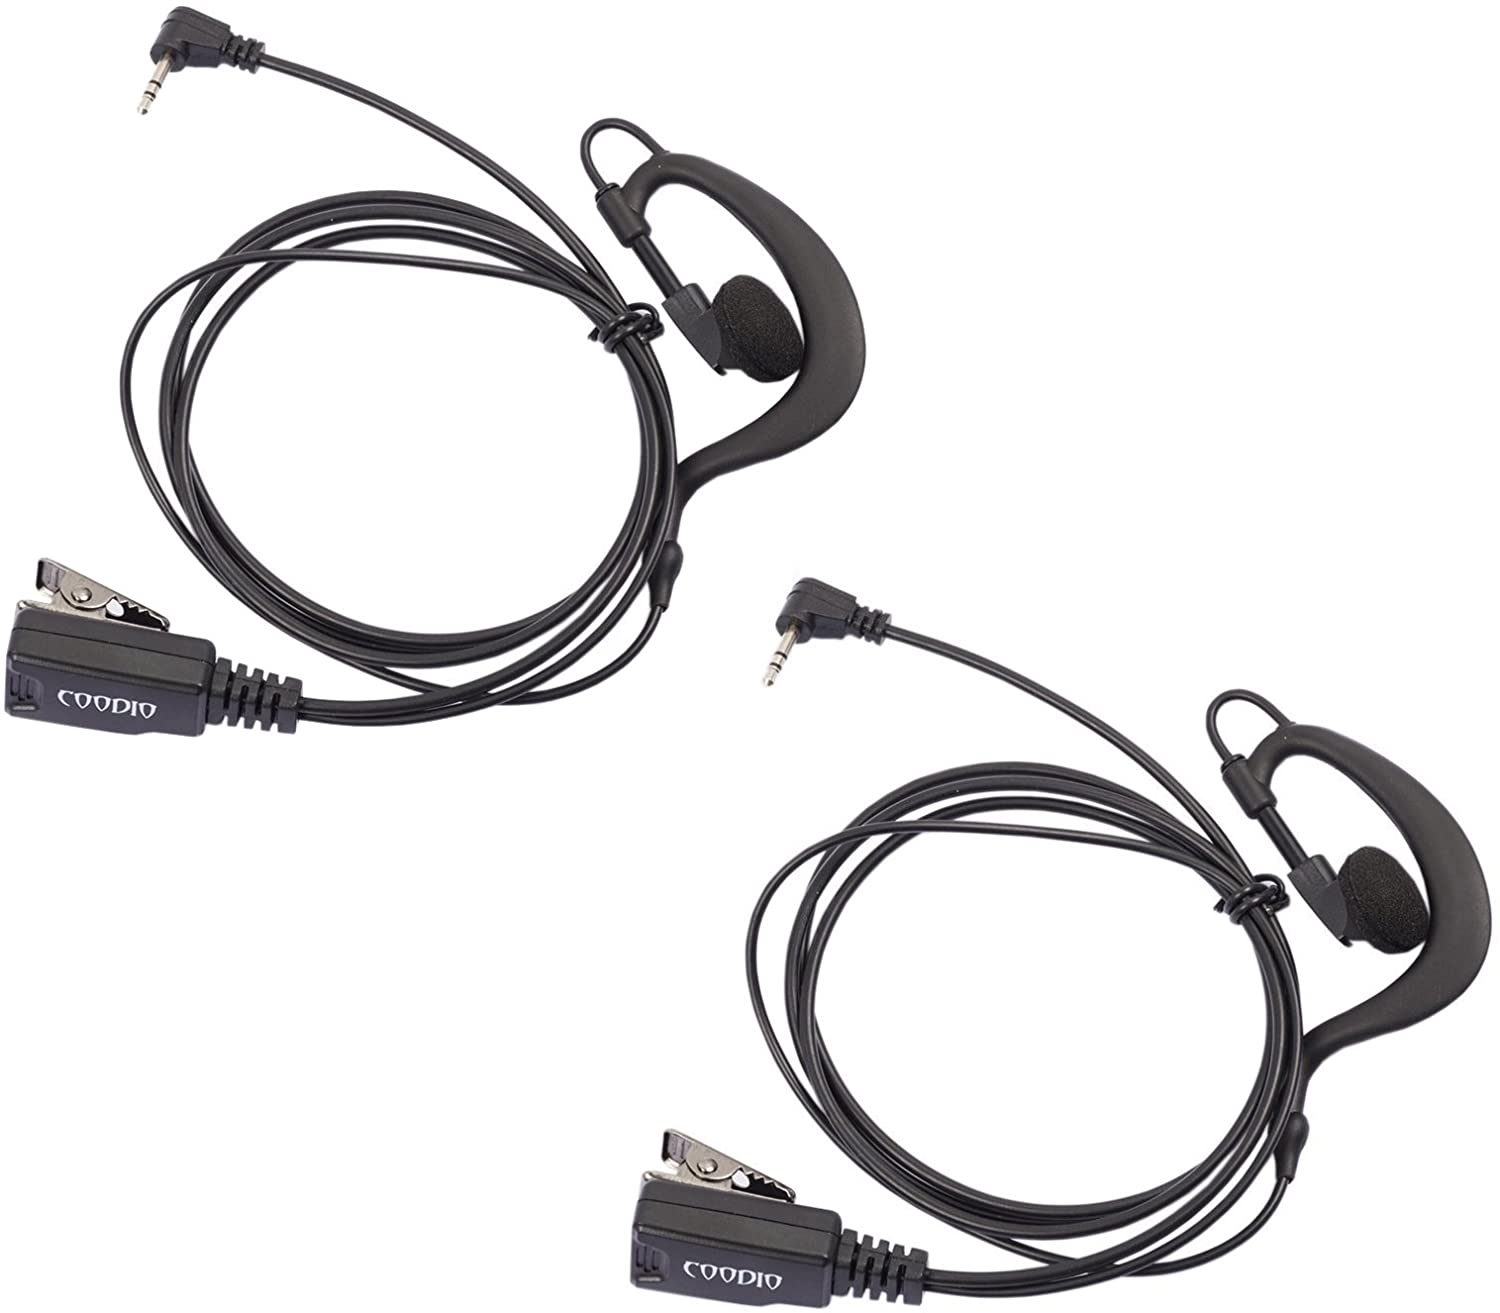 Lot 2 x Coodio G-Shape Earpiece Police Security Headset Inline PTT Mic Microphone for 1 Pin Motorola Talkabout 2 Way Radio Walkie Talkie